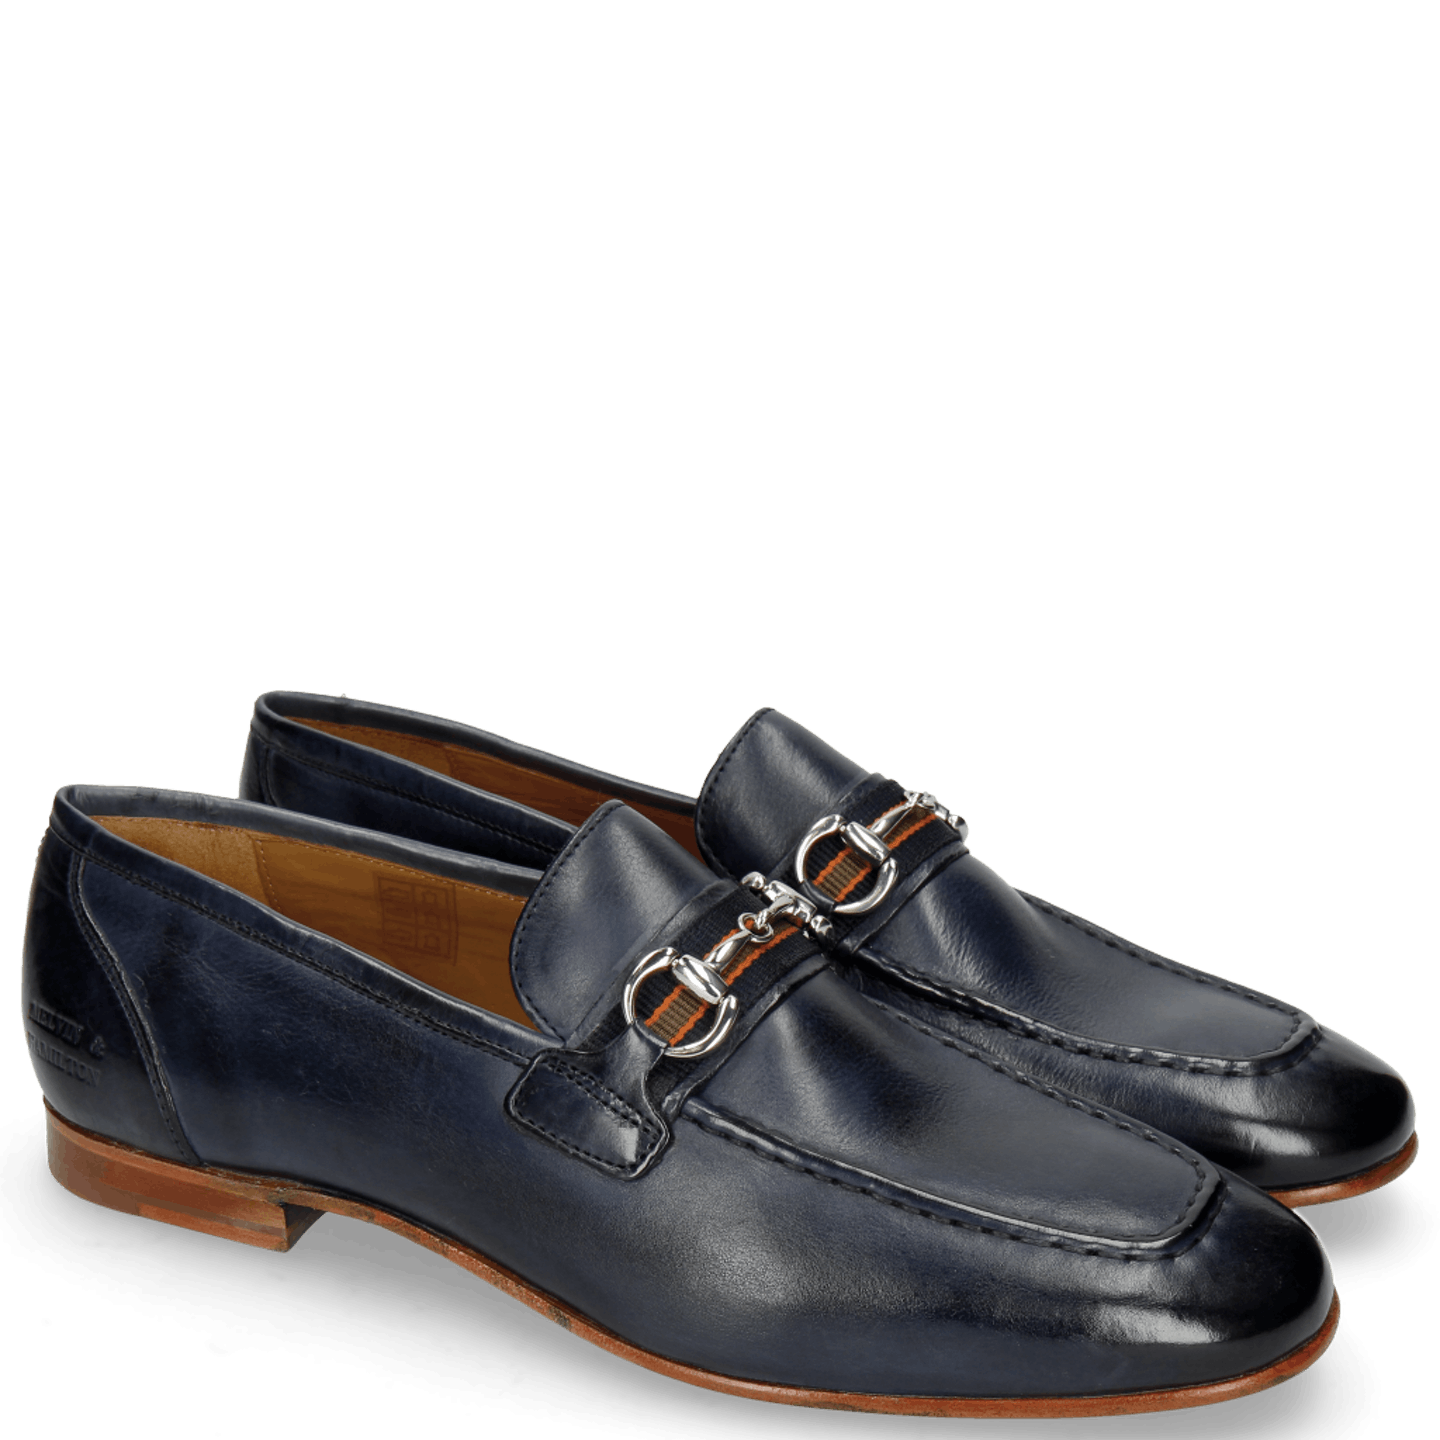 Clive 16 Indus Navy Strap Navy Orange